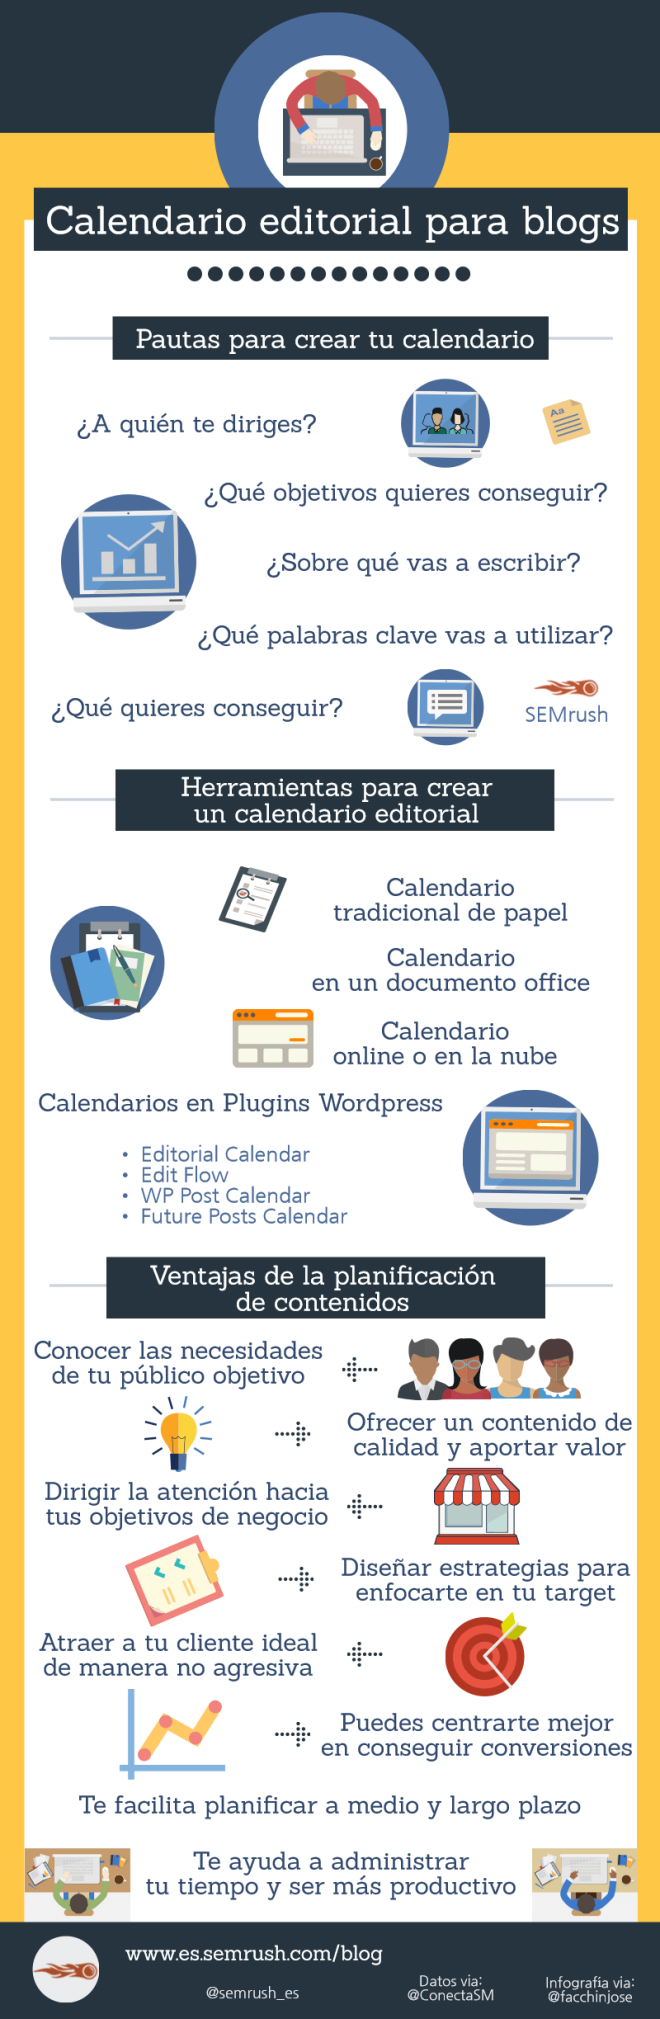 Calendario editorial para Blogs